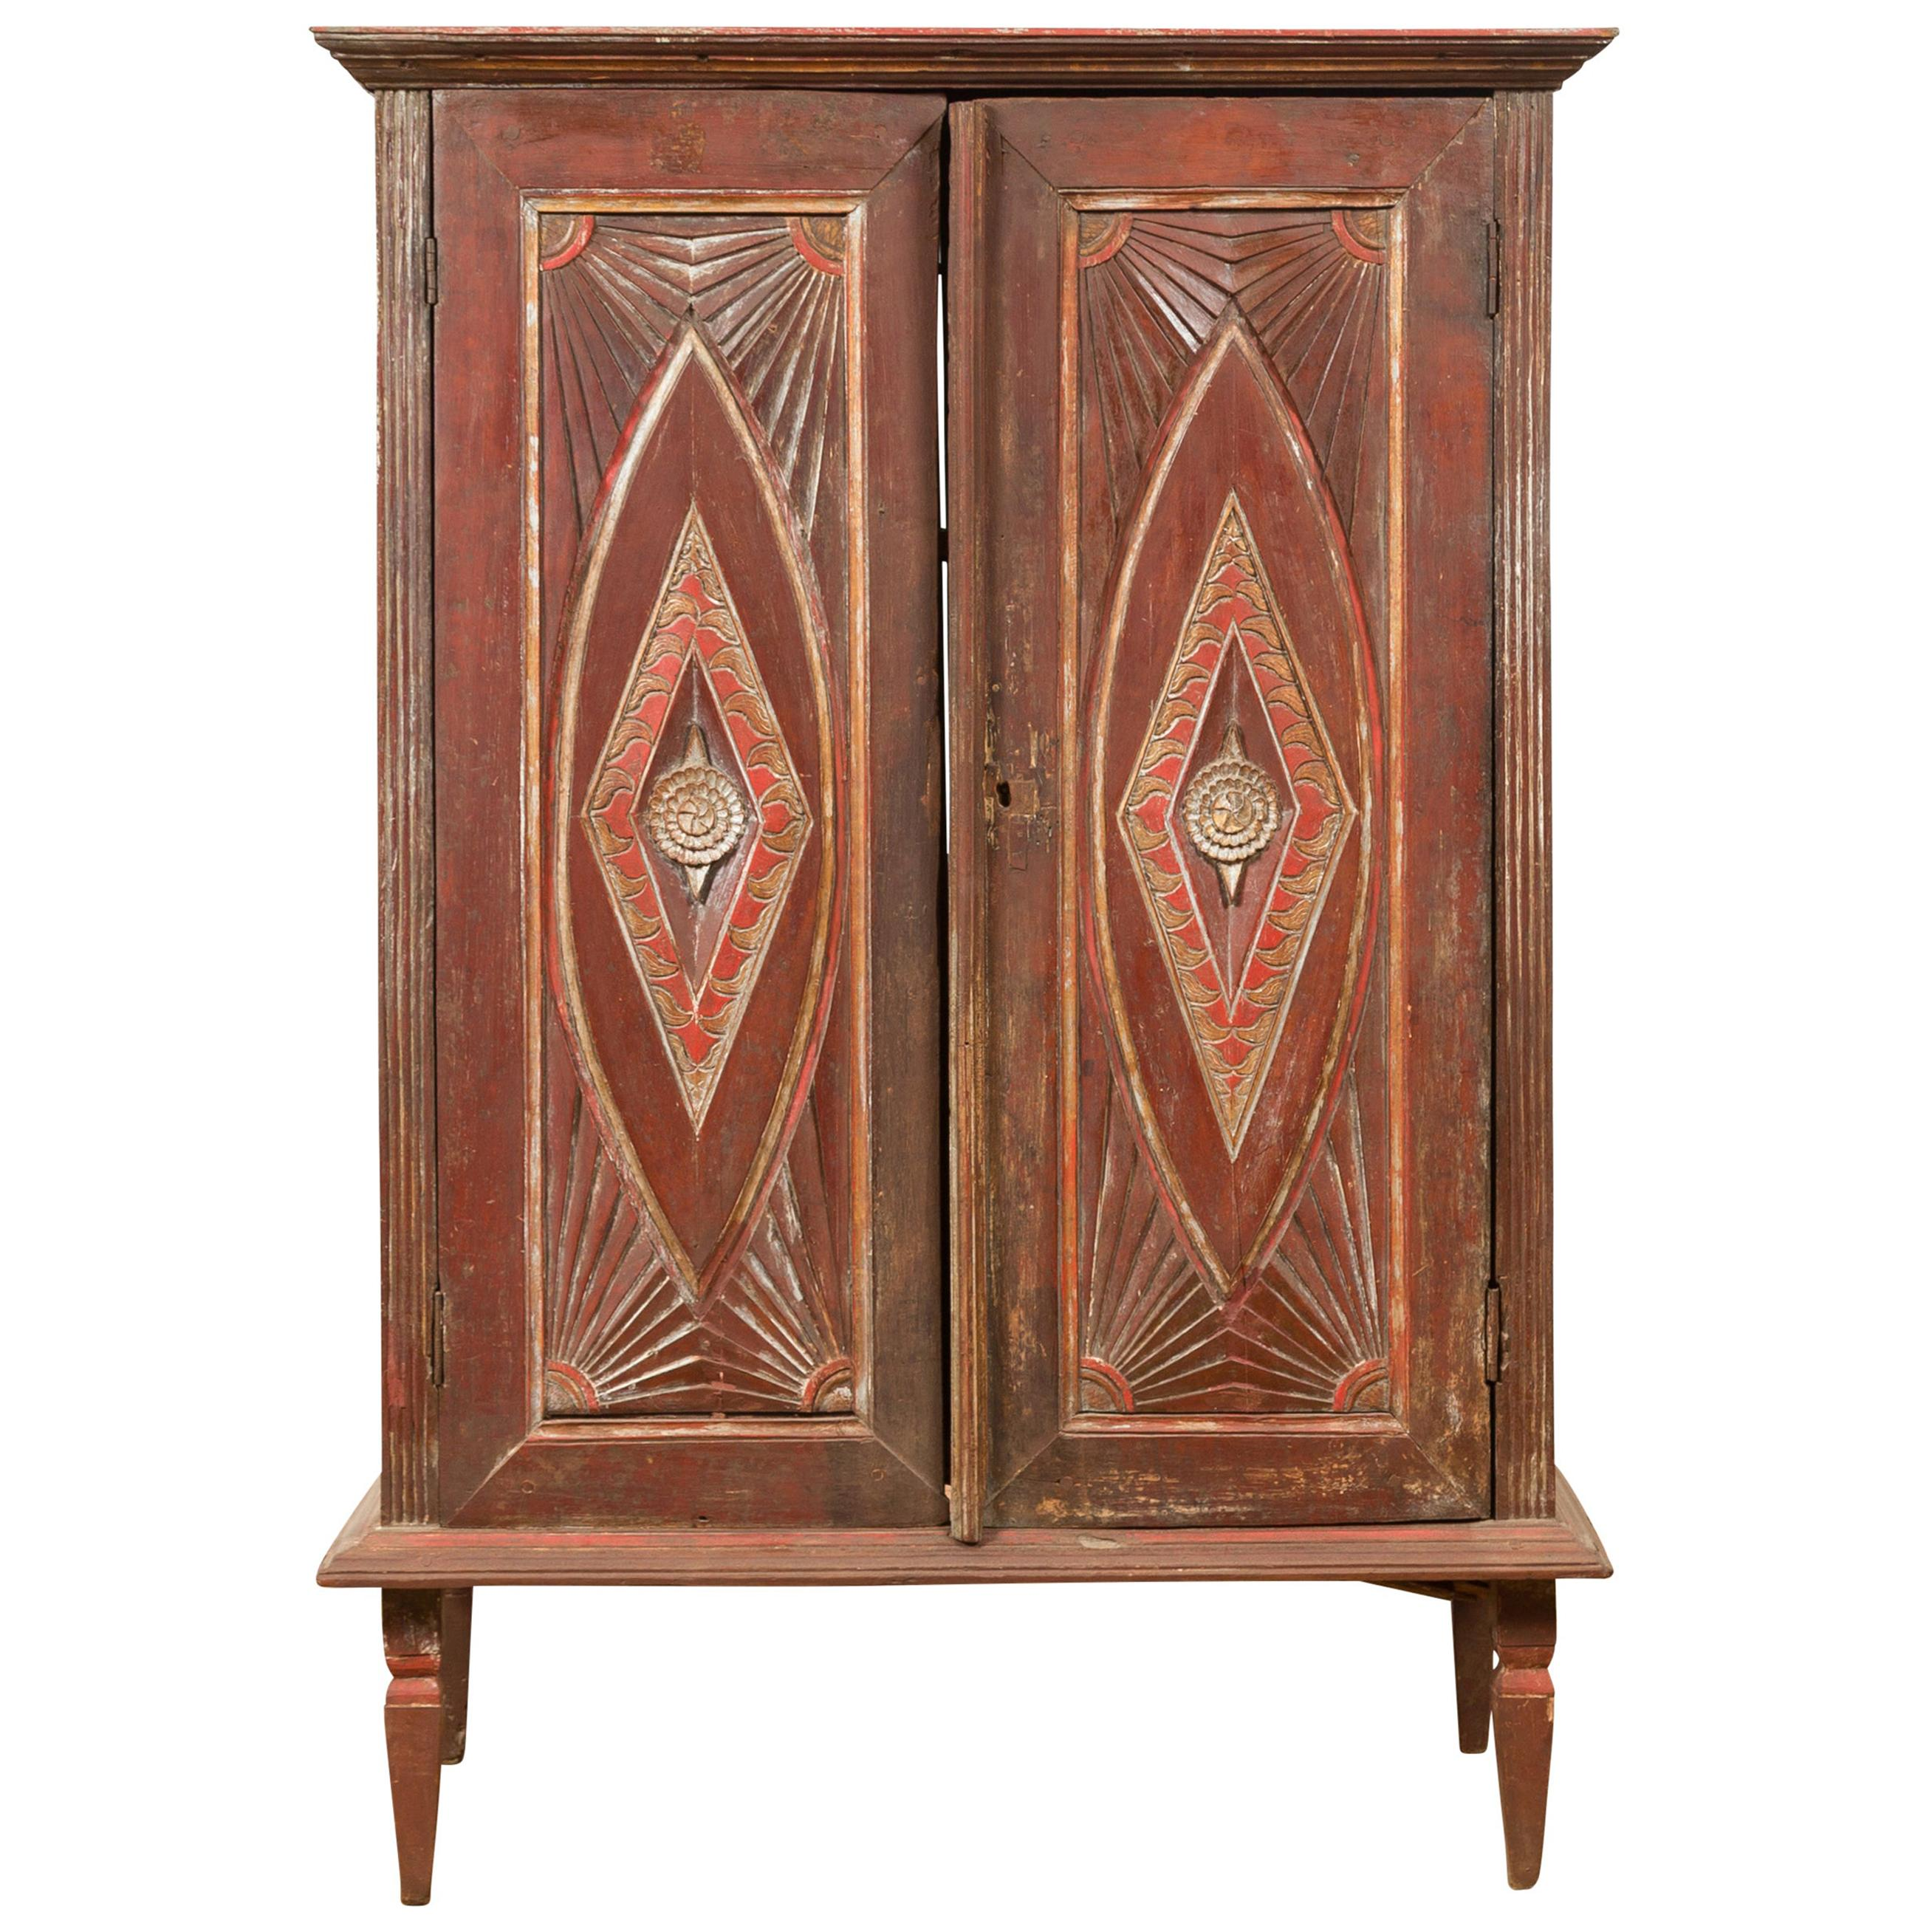 Antique Indonesian Wooden Cabinet with Carved and Painted Geometric Motifs